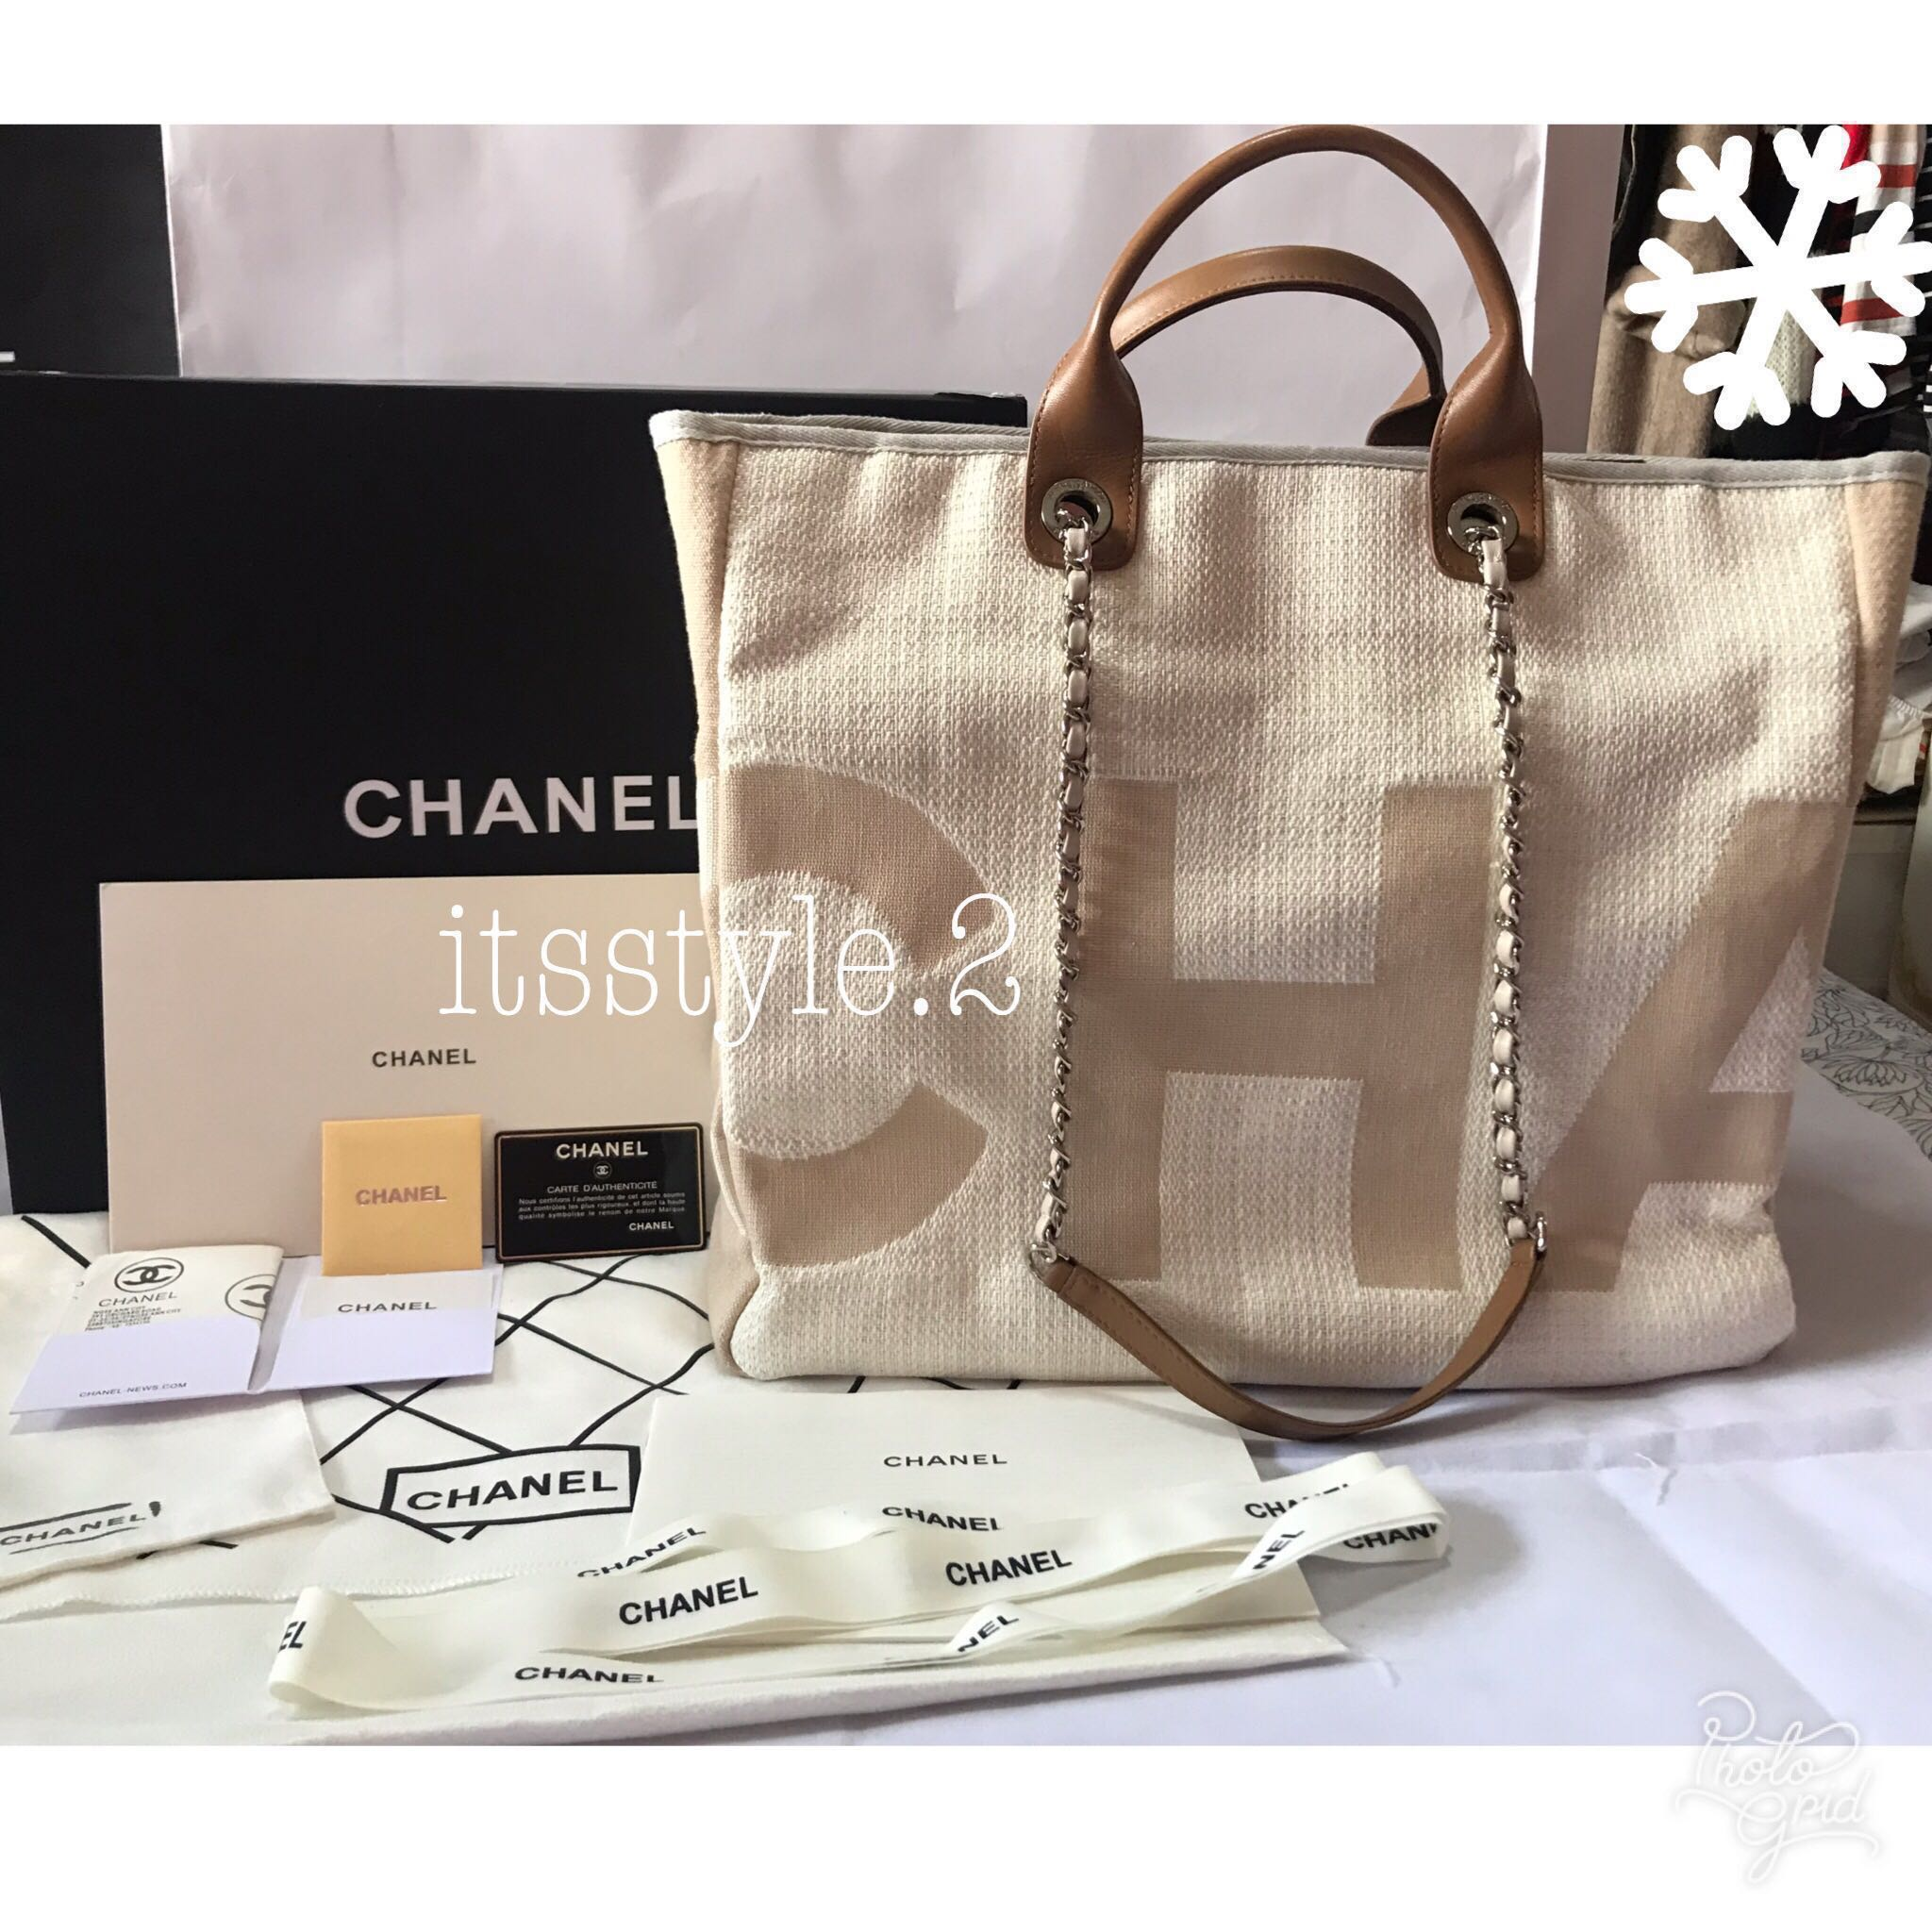 45e27fa0882f *SOLD*Chanel Deauville Tote Bag, Luxury, Bags & Wallets, Handbags on  Carousell